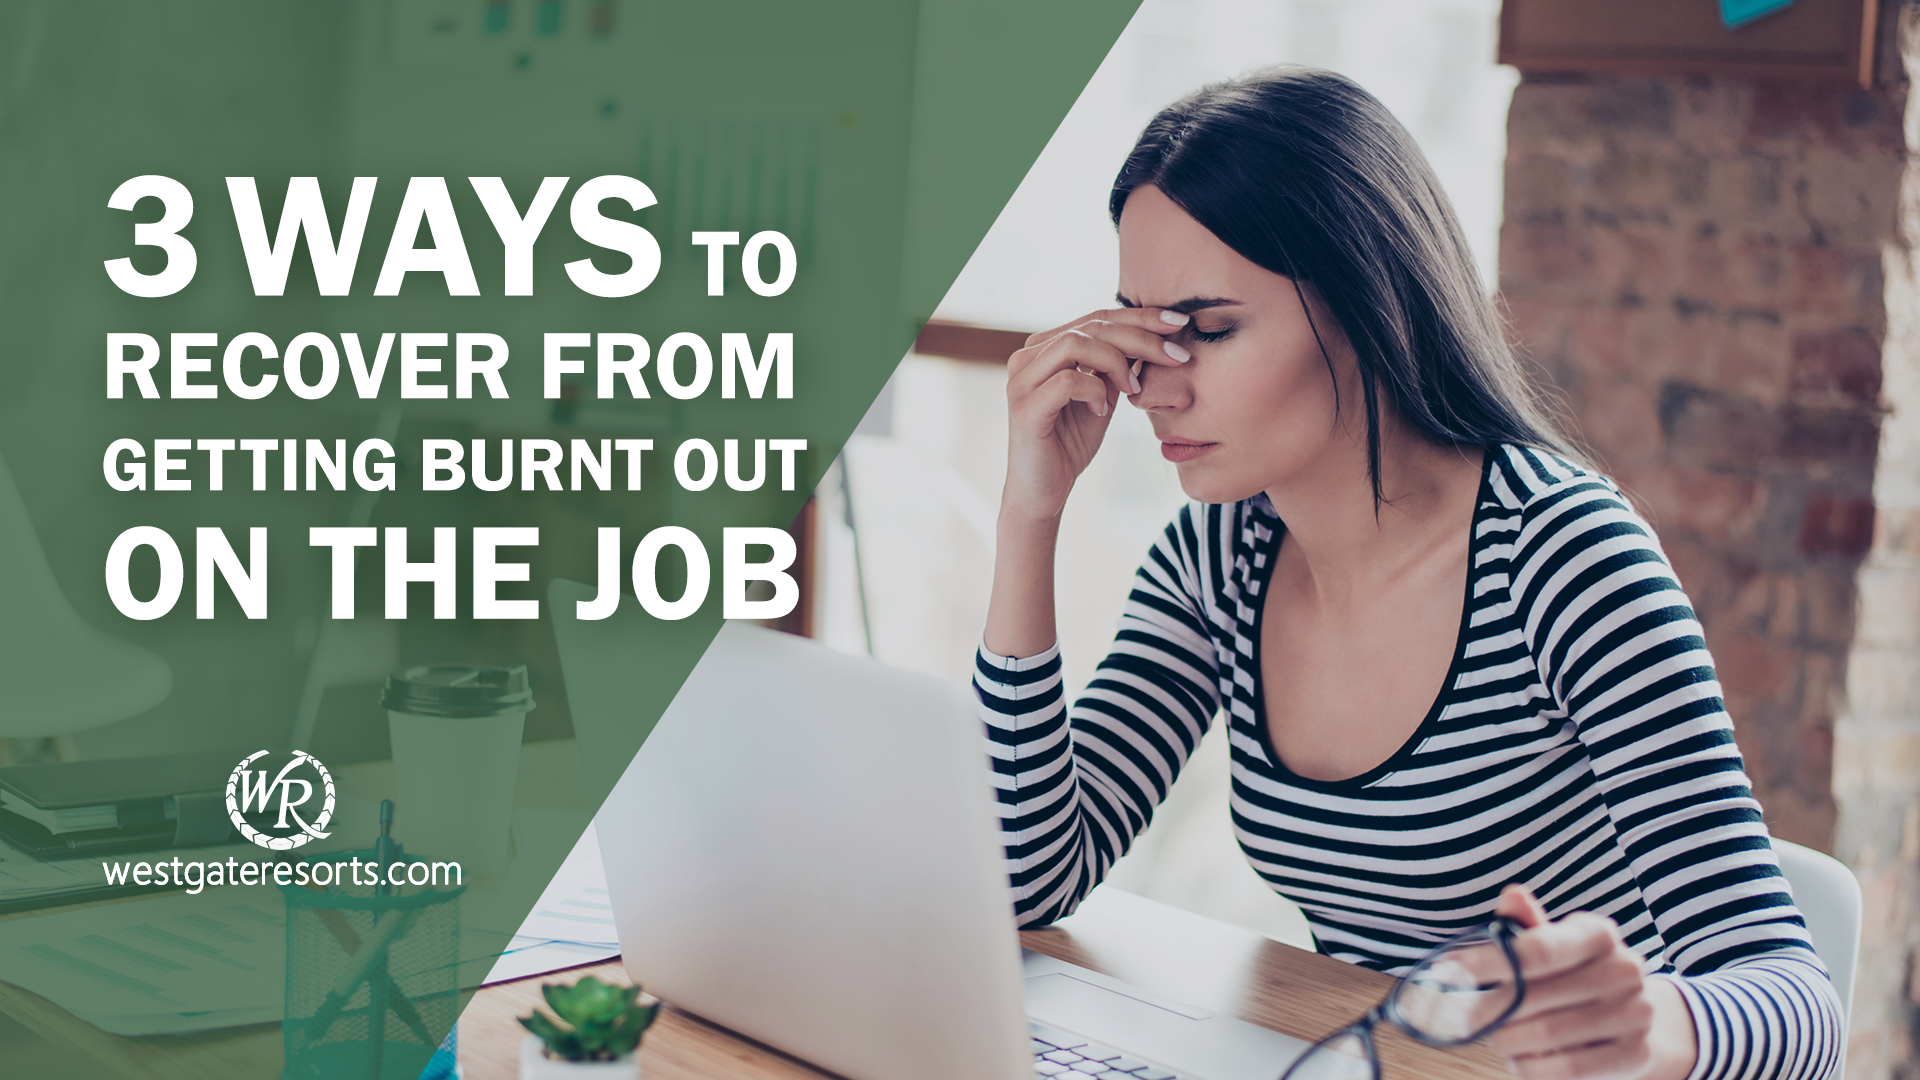 How to Handle Job Burnout | Three ways to recover from getting burnt out on the job | Signs of Job Burnout